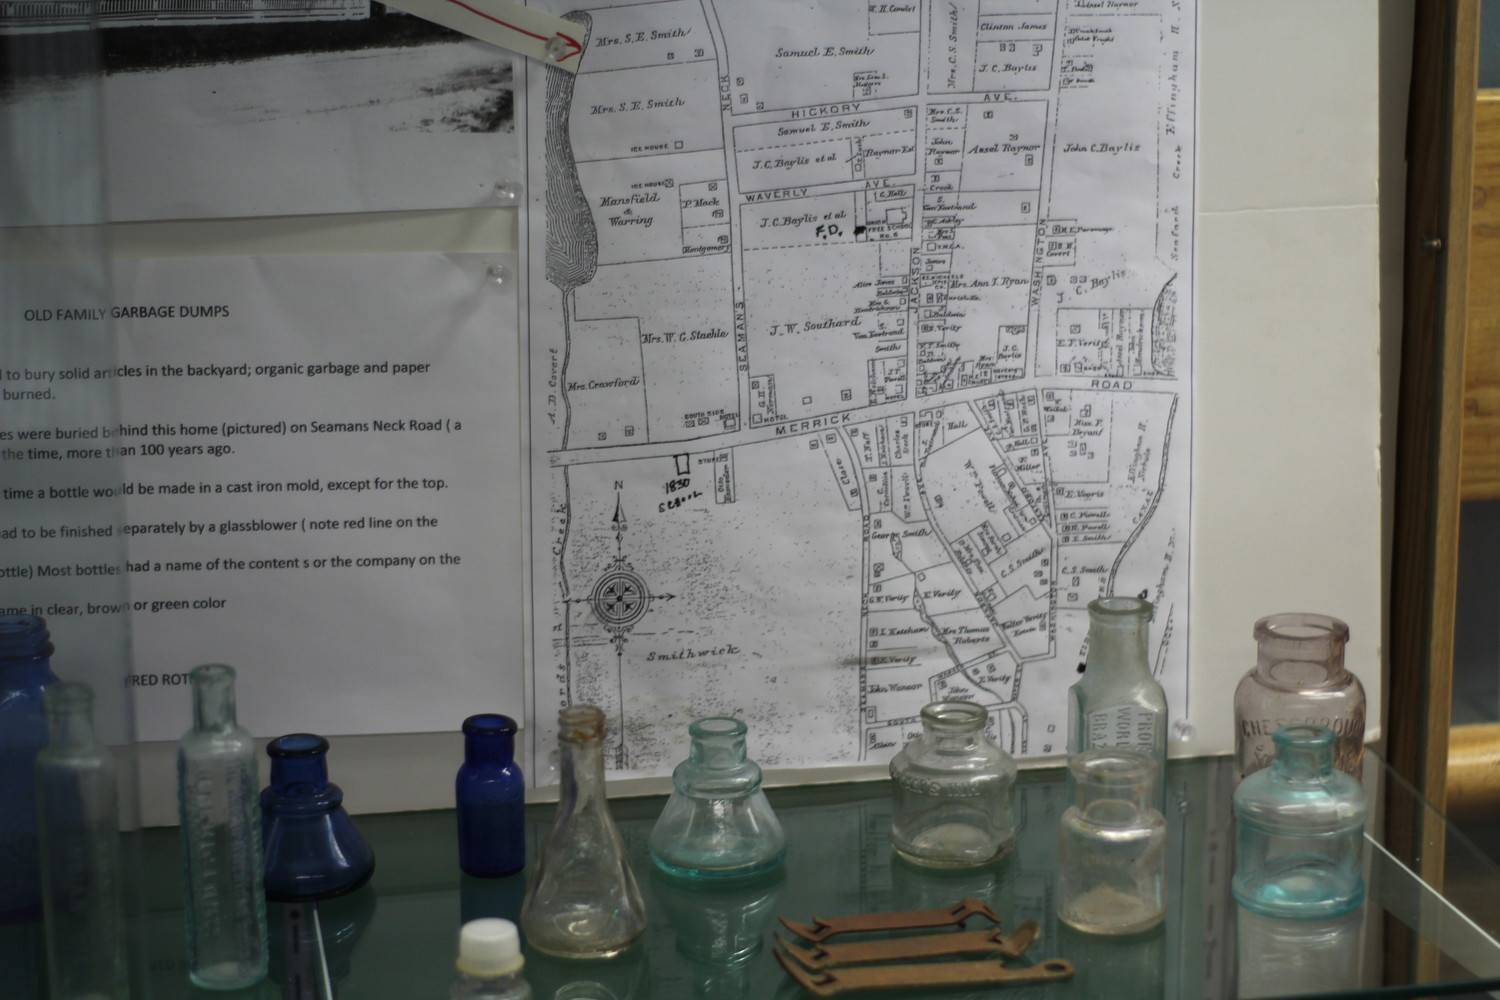 Roth's personal Seaford history collection has made appearances at the Seaford Public Library and Seaford Historical Society Museum. Here, Roth's century-old bottles and pots that he found buried behind a Seaford home are showcased at the library.